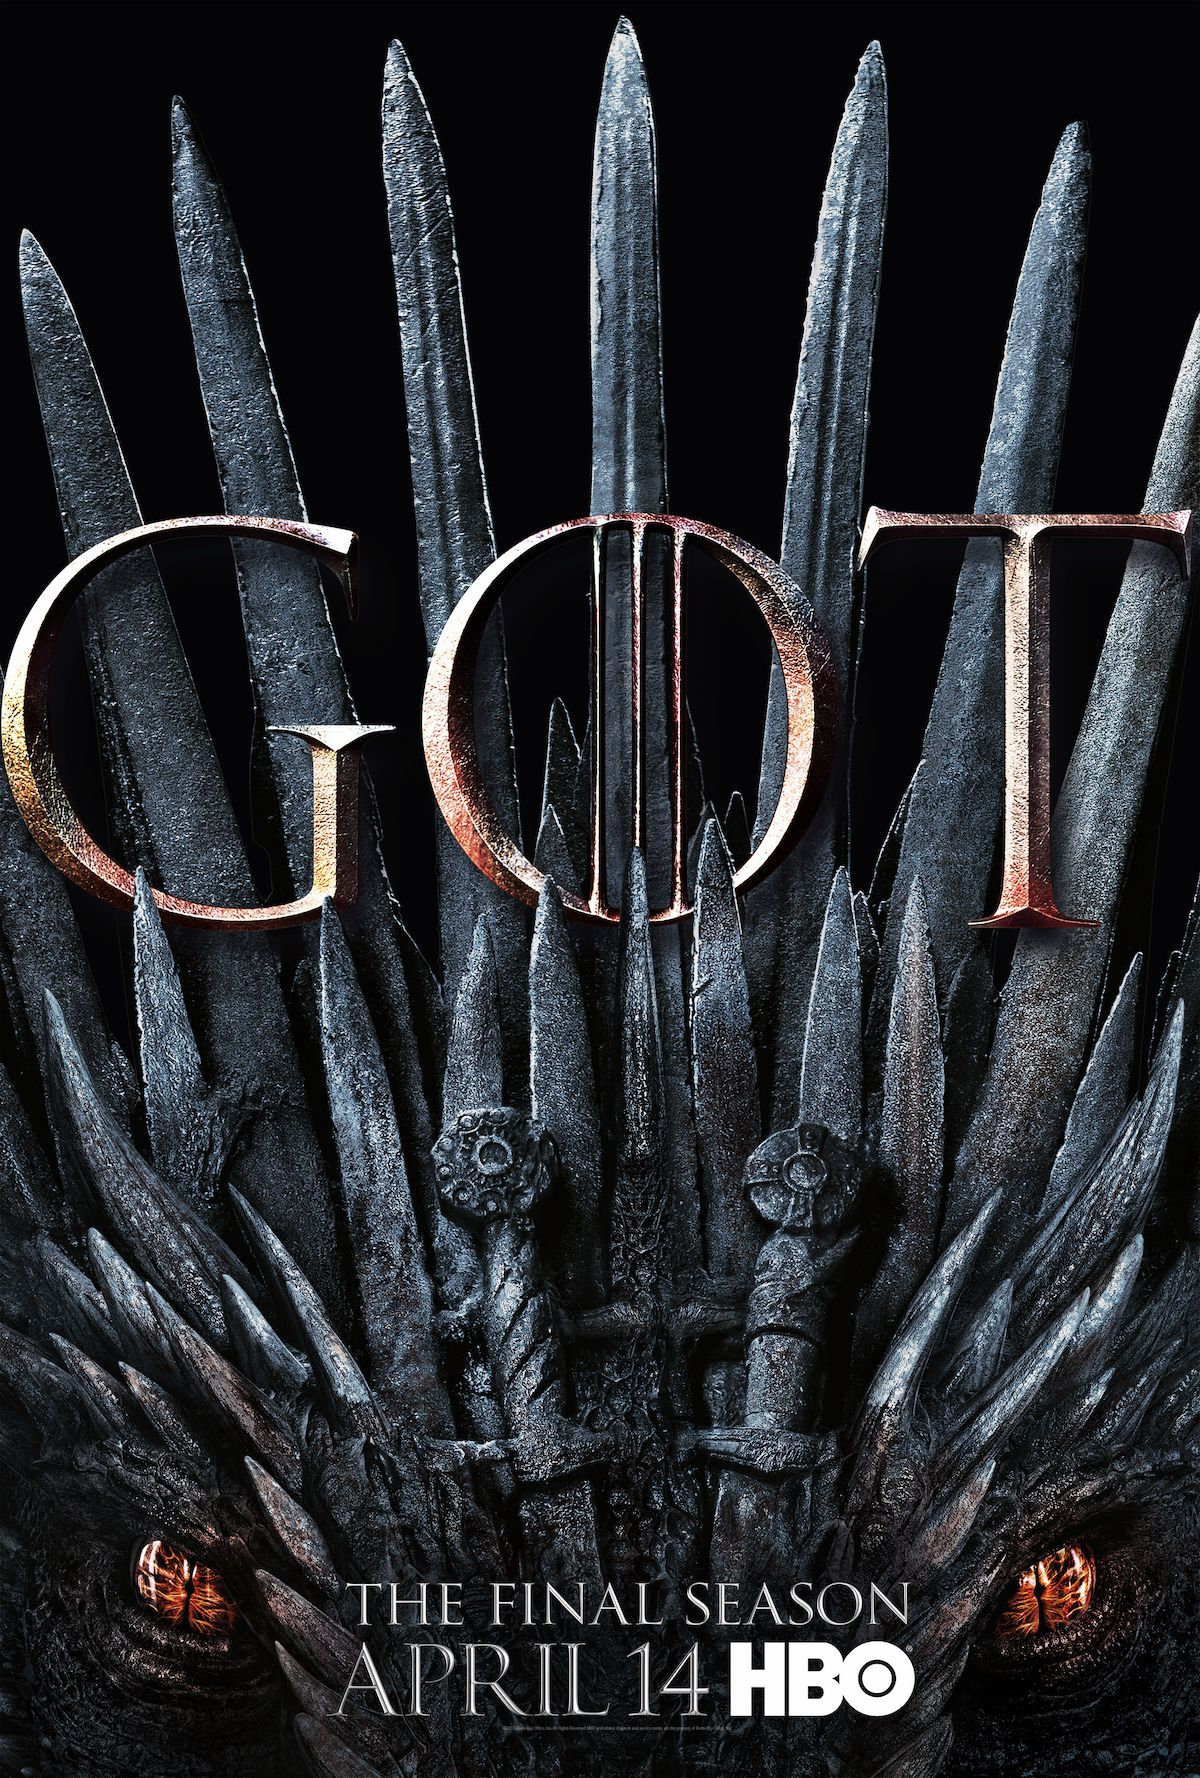 free download game of thrones season 4 episode 5